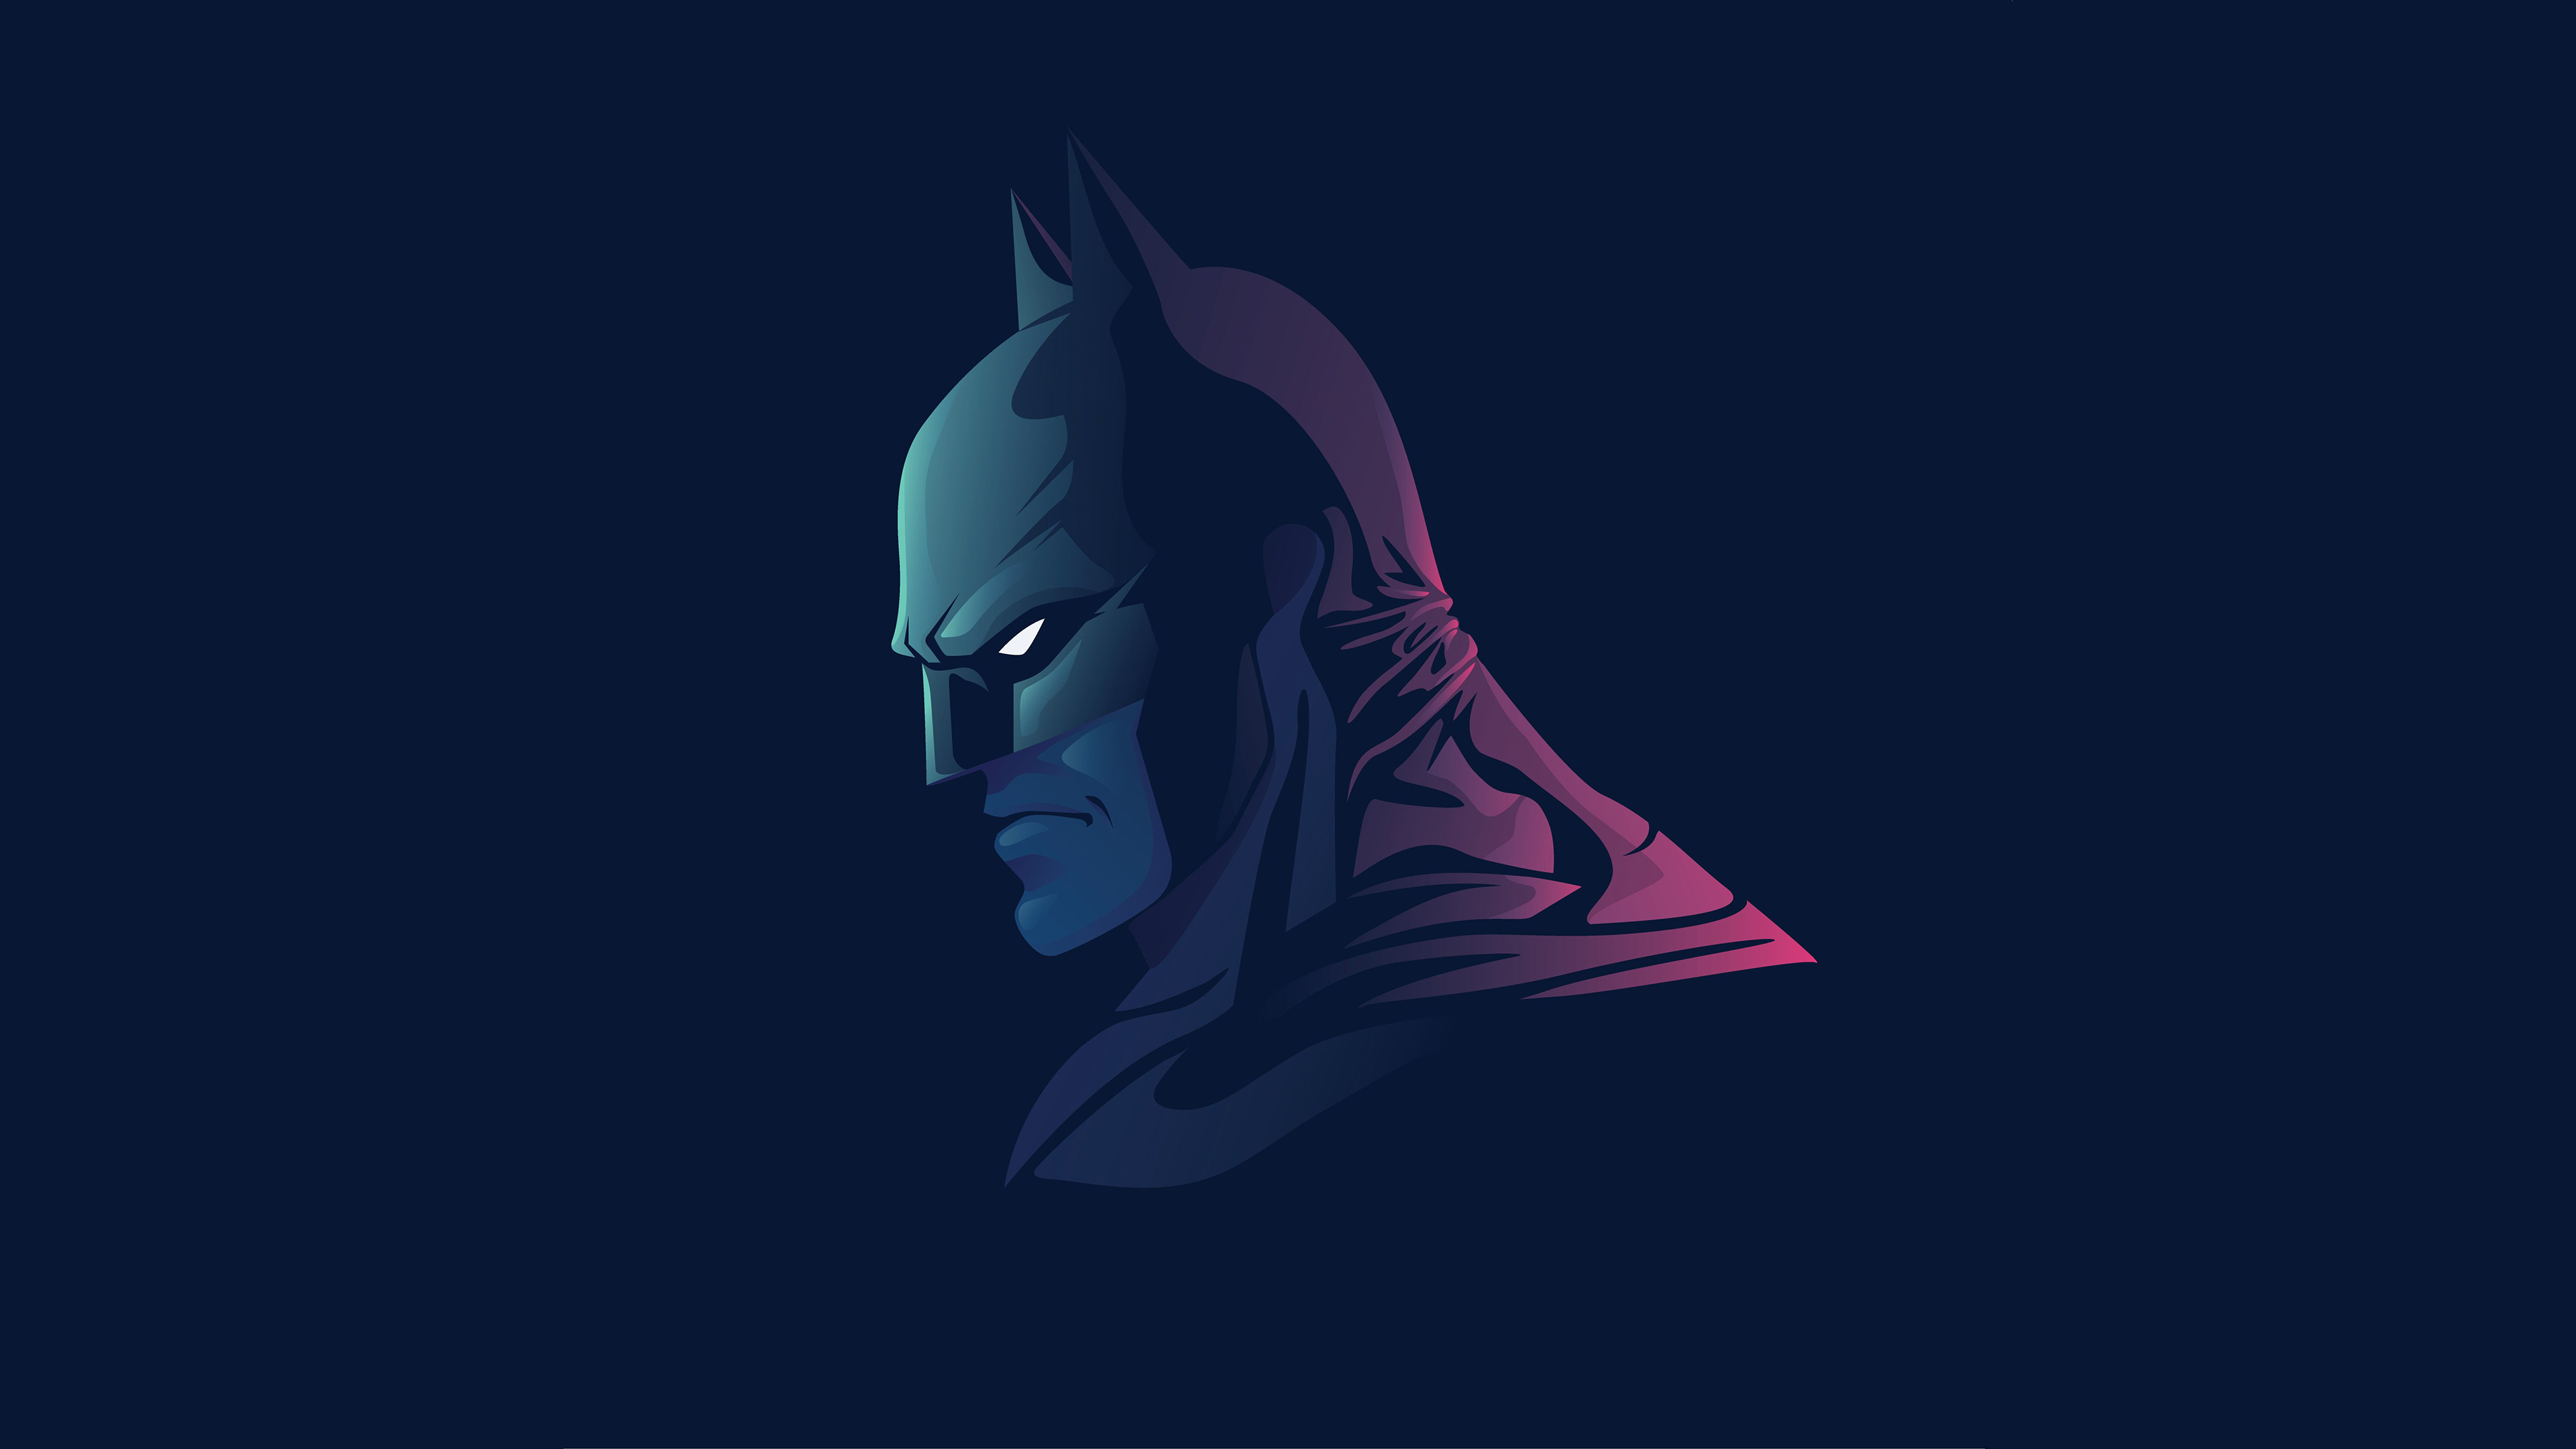 Batman Minimalist Wallpaper 4k Ultra Hd Id 3133